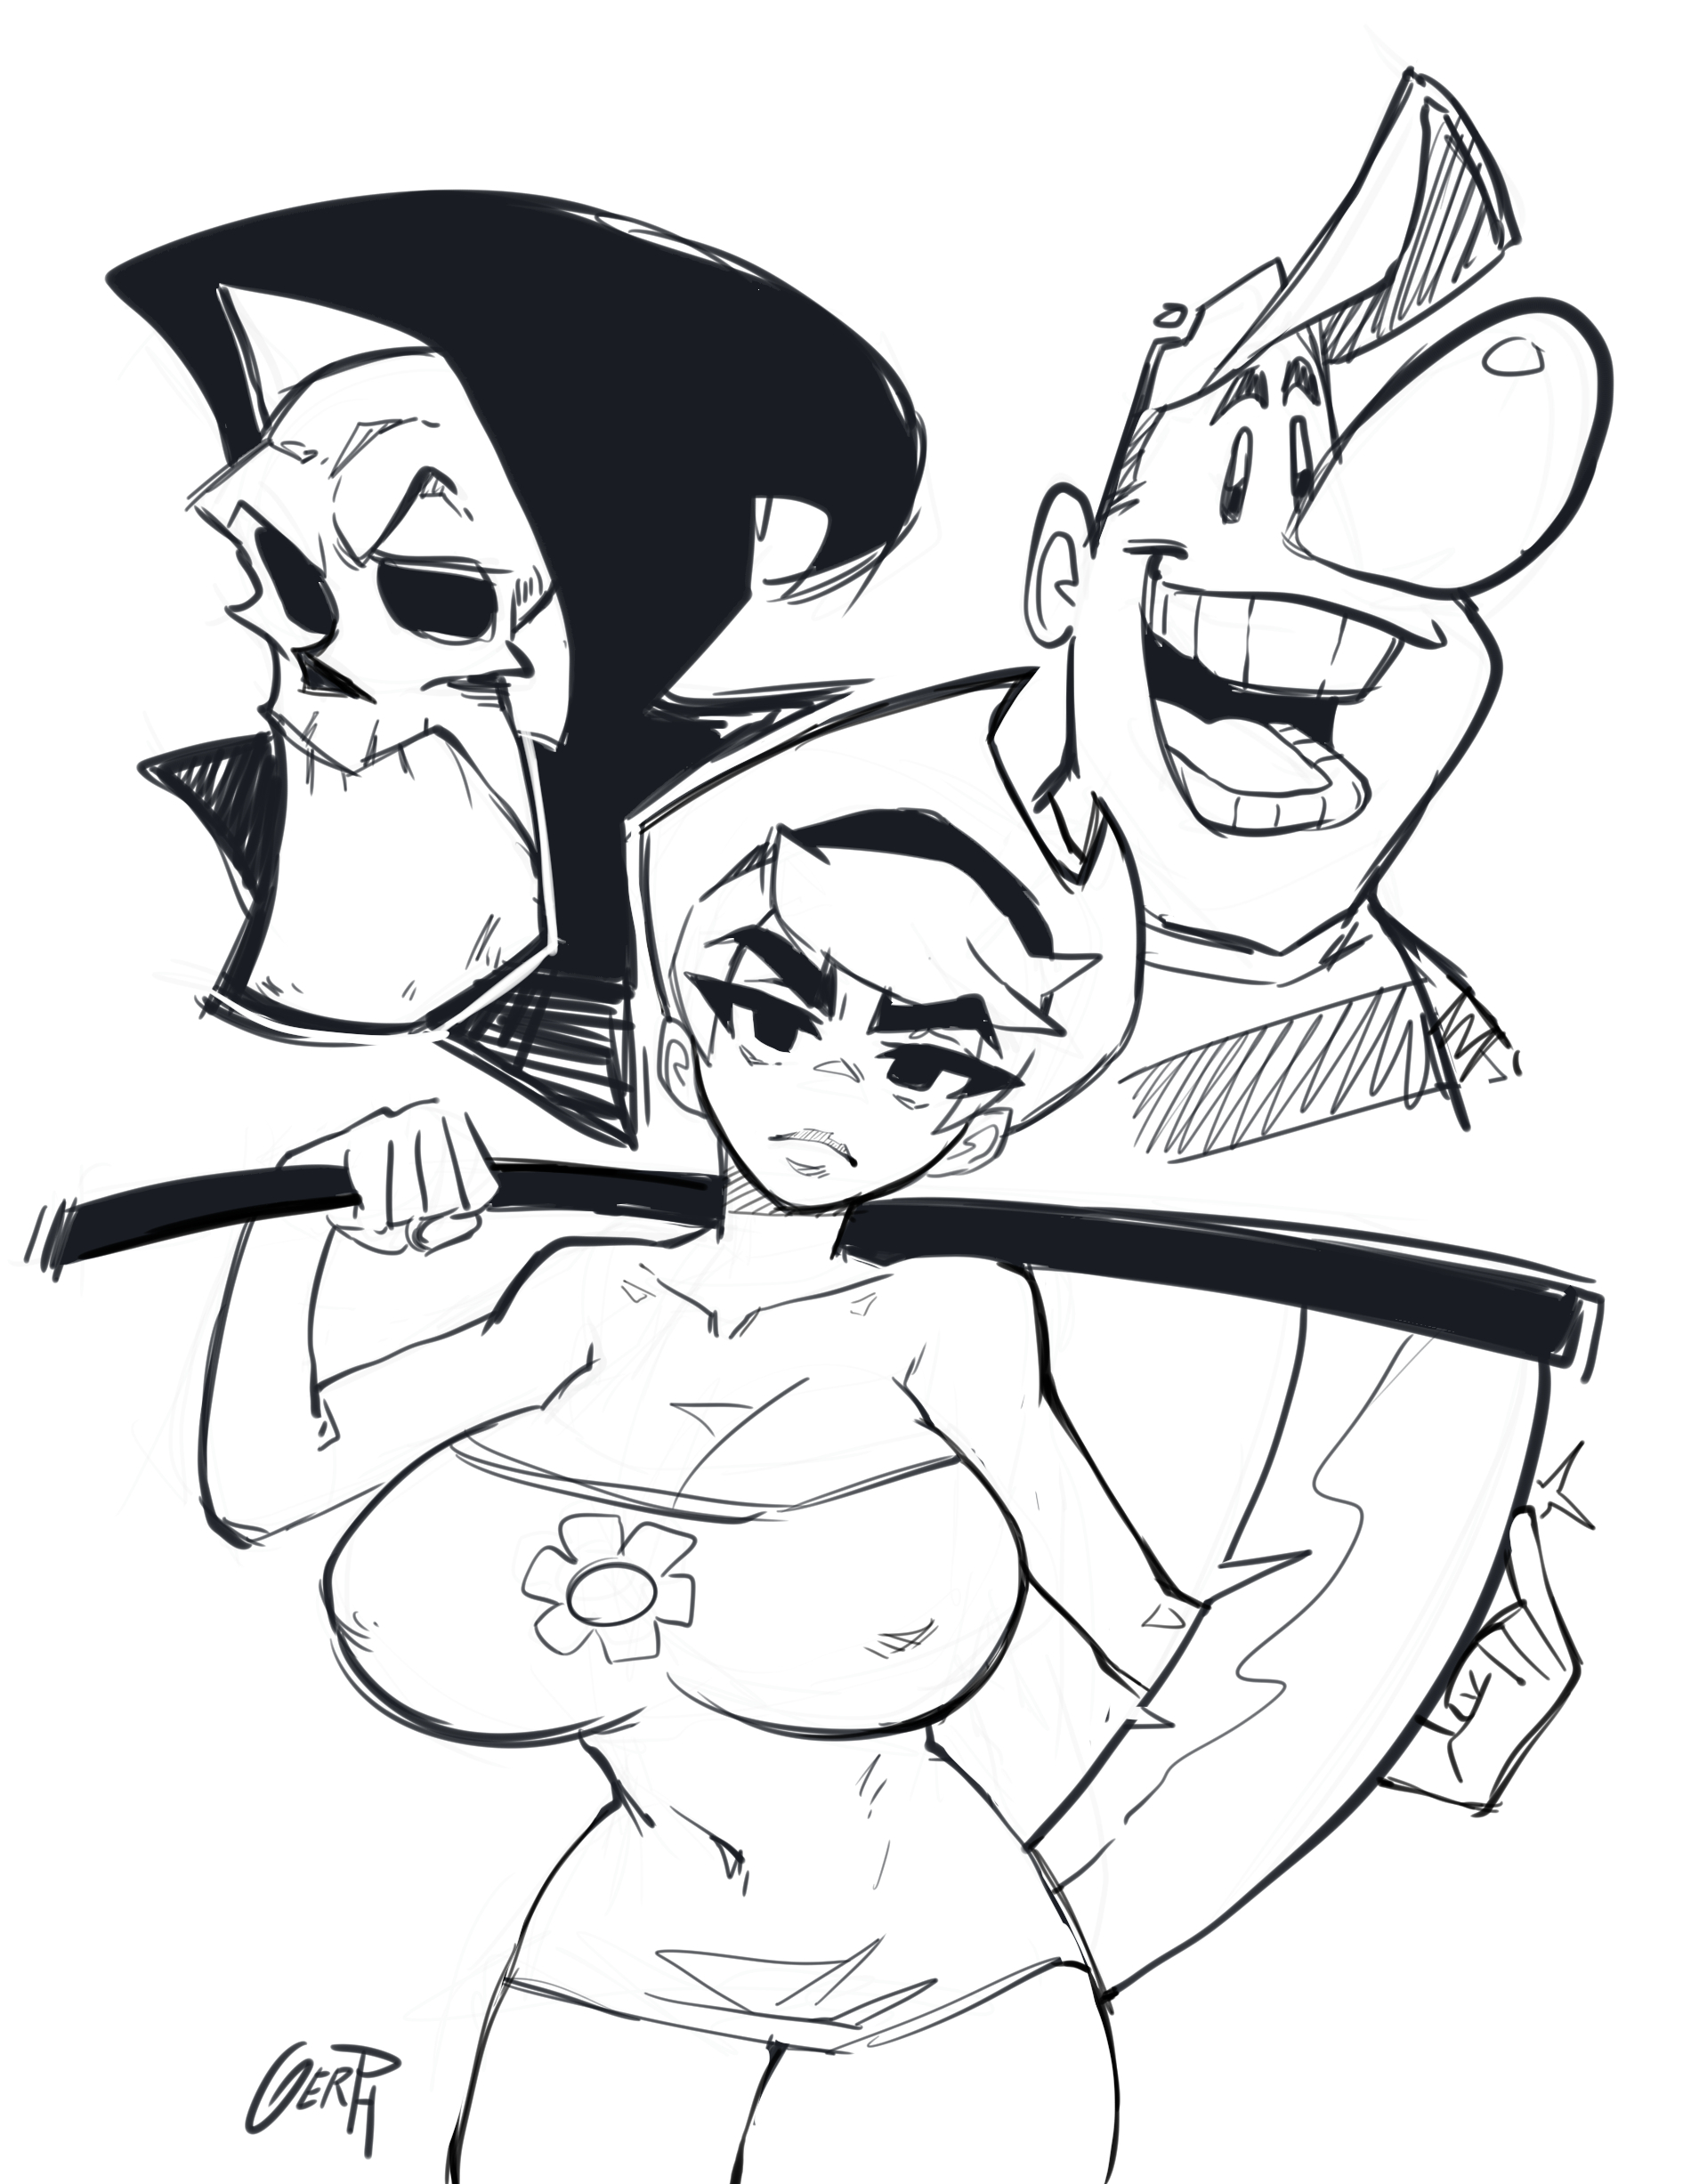 Grim, Billy and Mandy